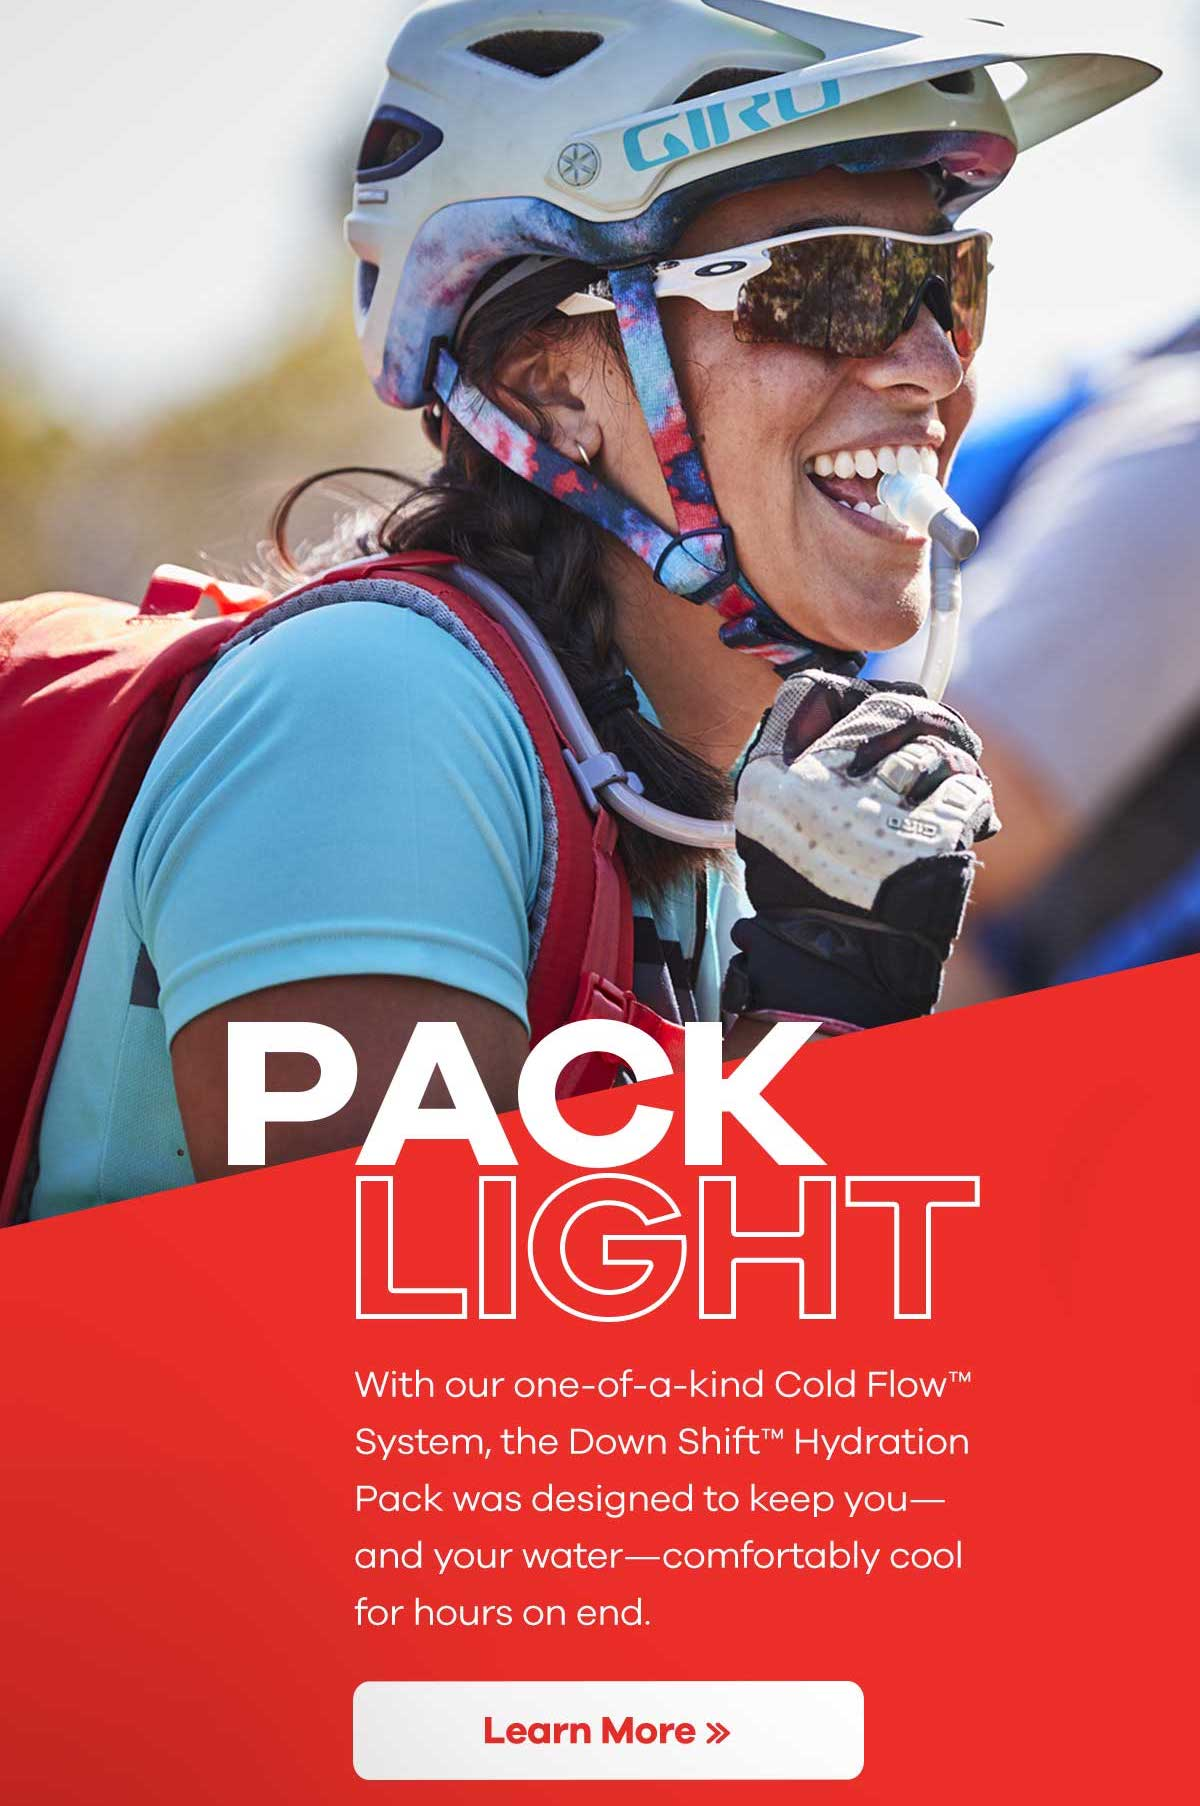 PACK LIGHT - With our one-of-a-kind Cold FlowT System, the Down ShiftT Hydration Pack was designed to keep you-and your water-comfortably cool for hours on end. | Learn More >>